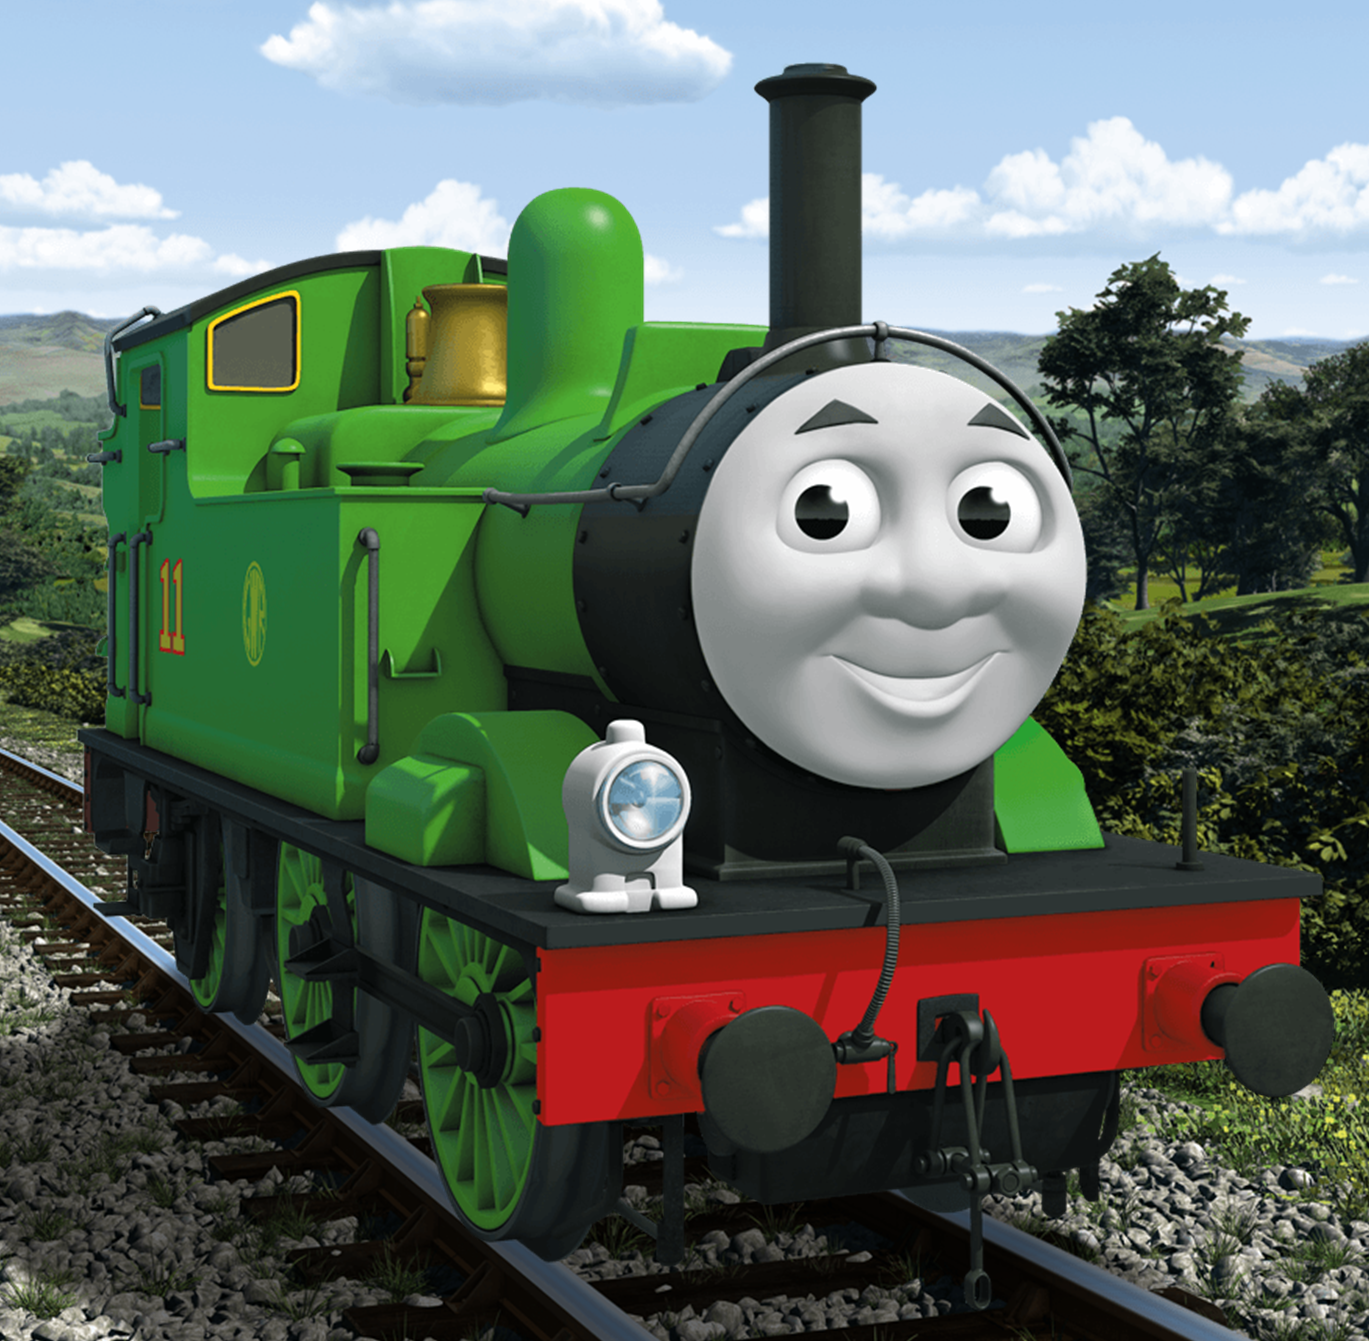 It's just a guess, based on Duck having a white footplate even though ...